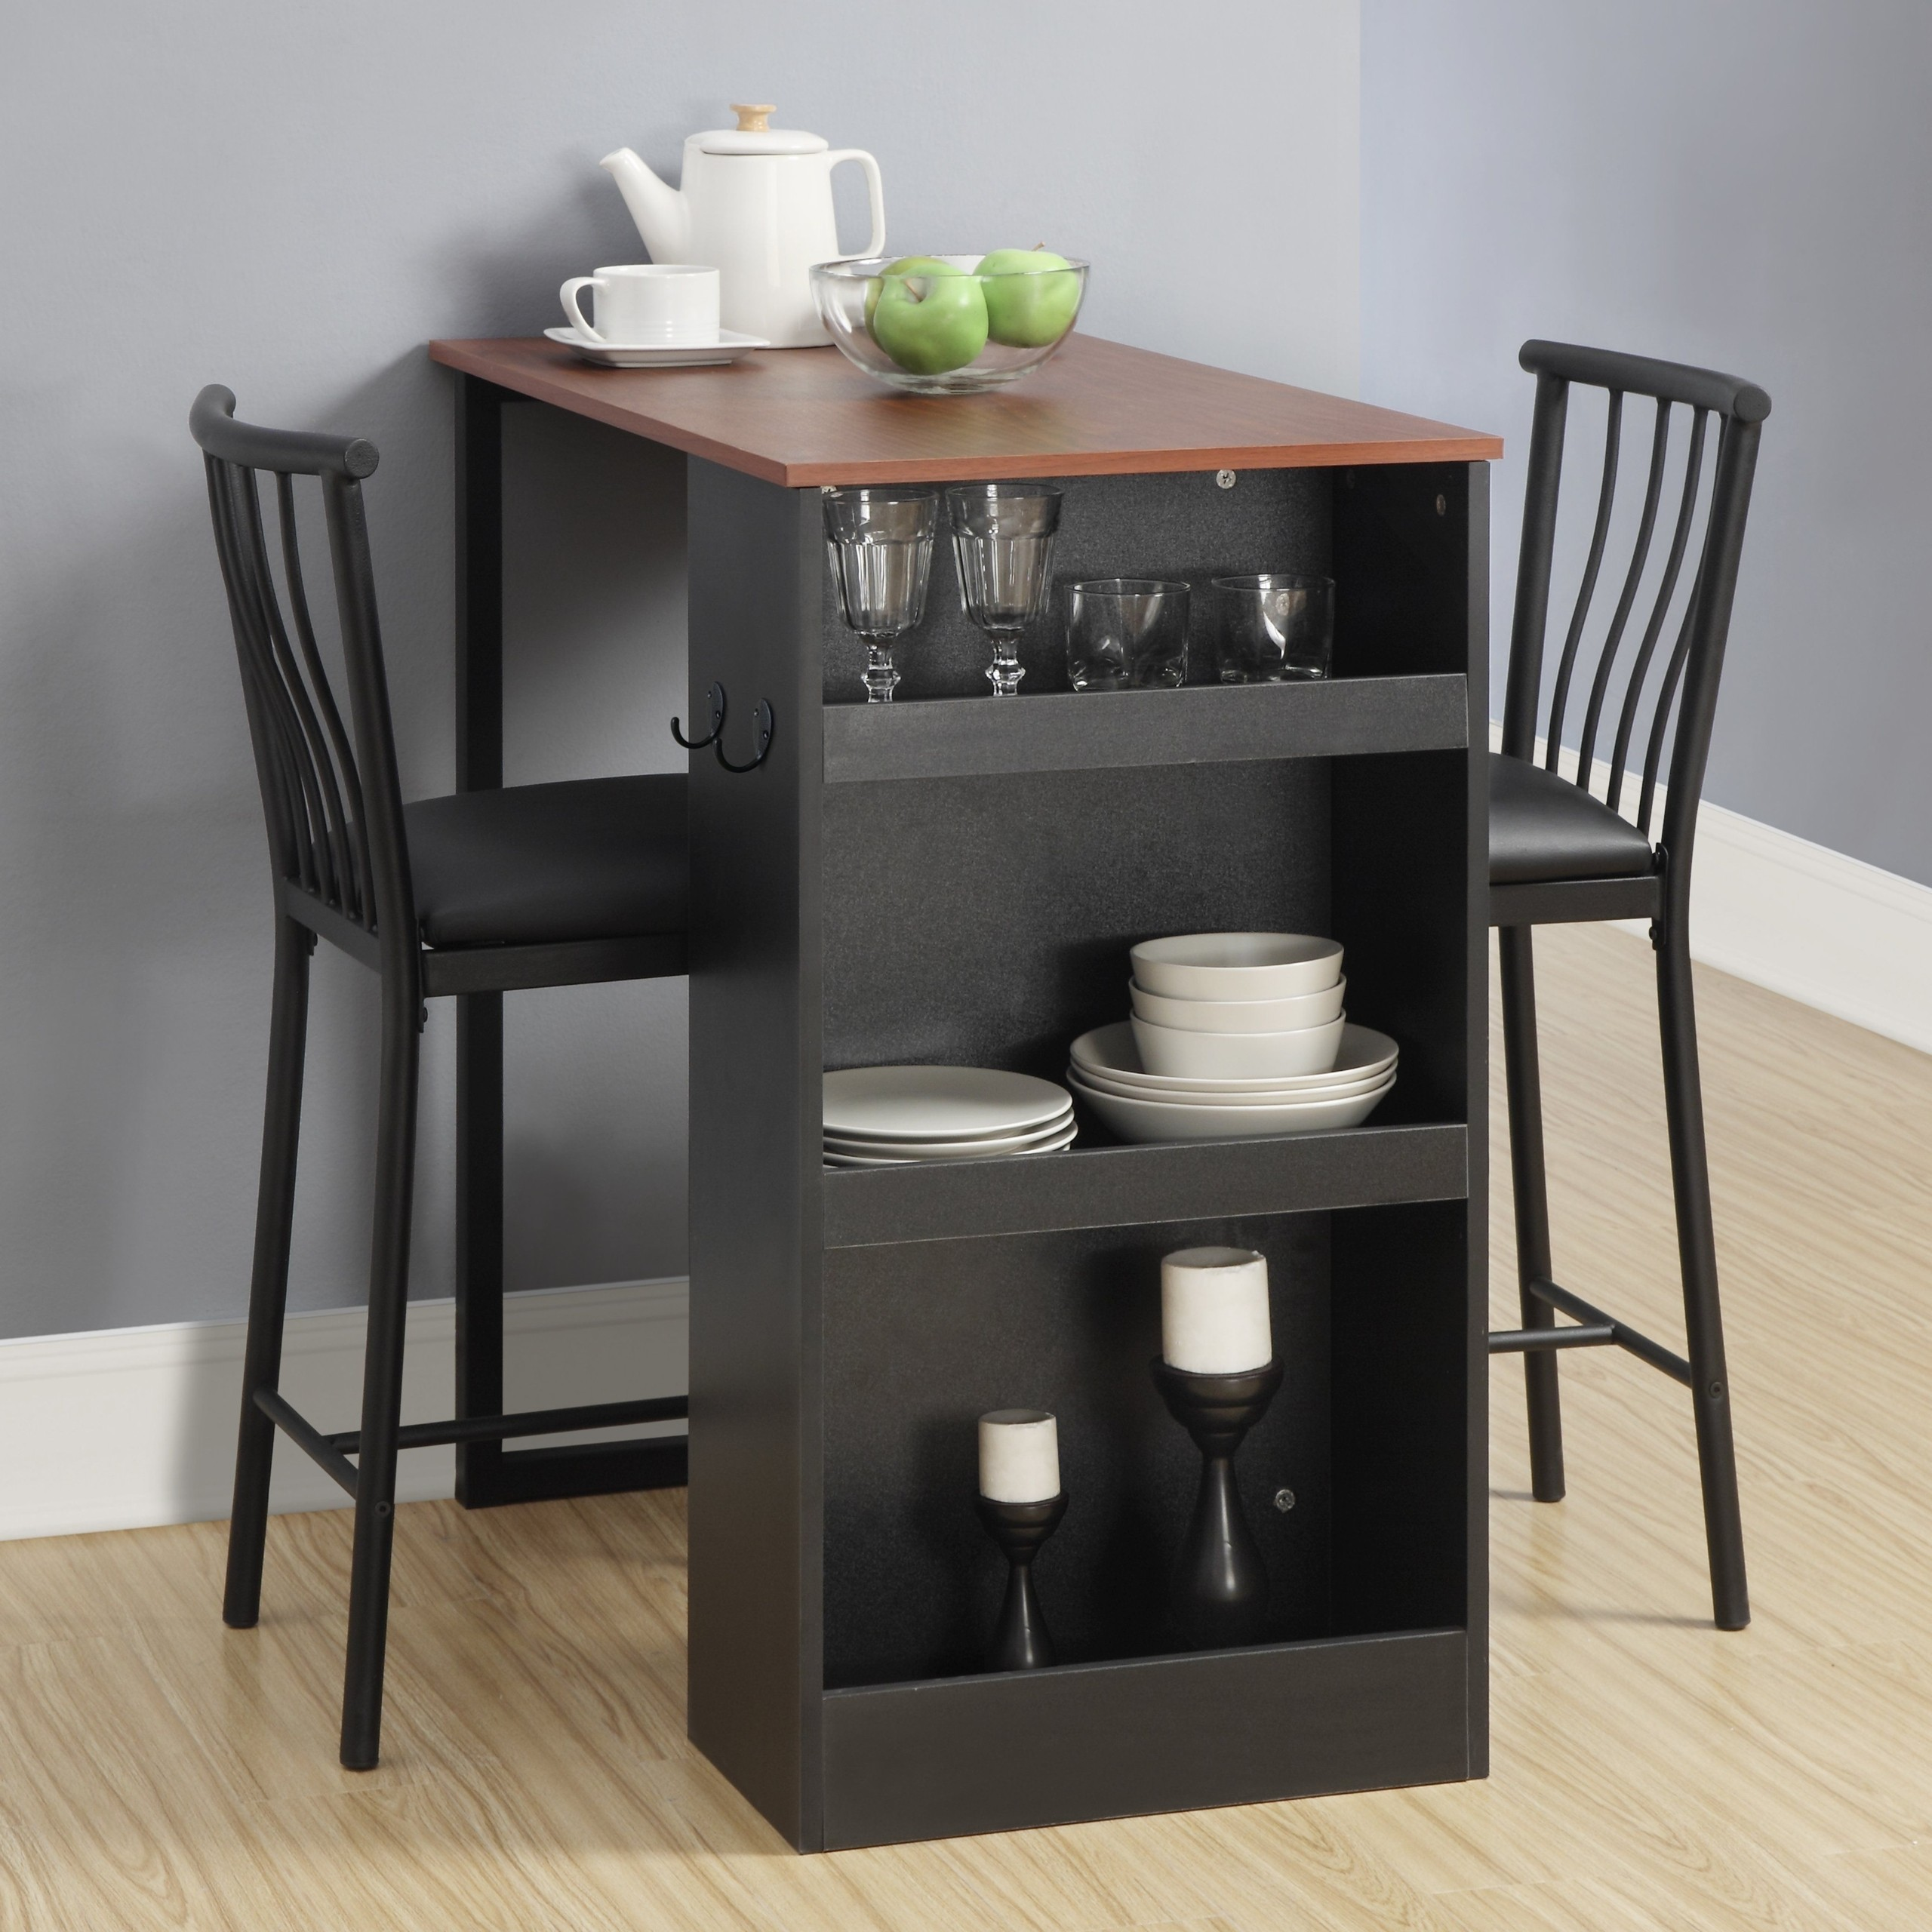 Small counter height tables & Small Counter Height Tables - Foter